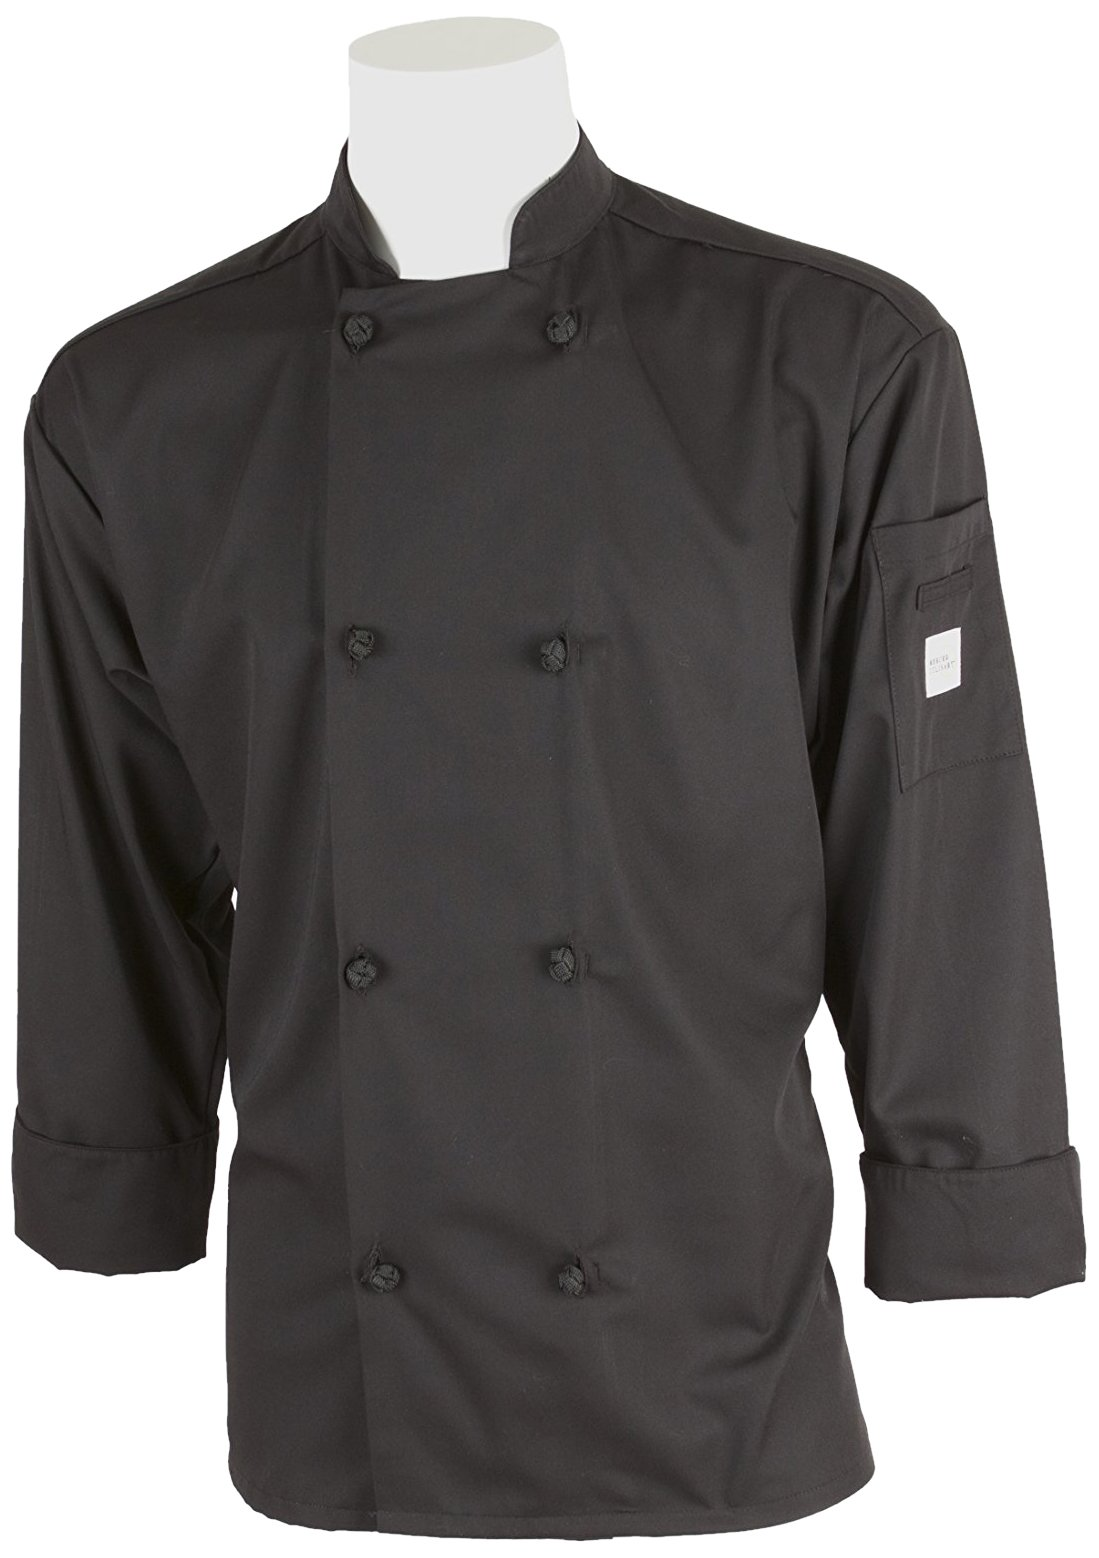 Mercer Culinary M60012BKM Millennia Men's Cook Jacket with Cloth Knot Buttons, Medium, Black by Mercer Culinary